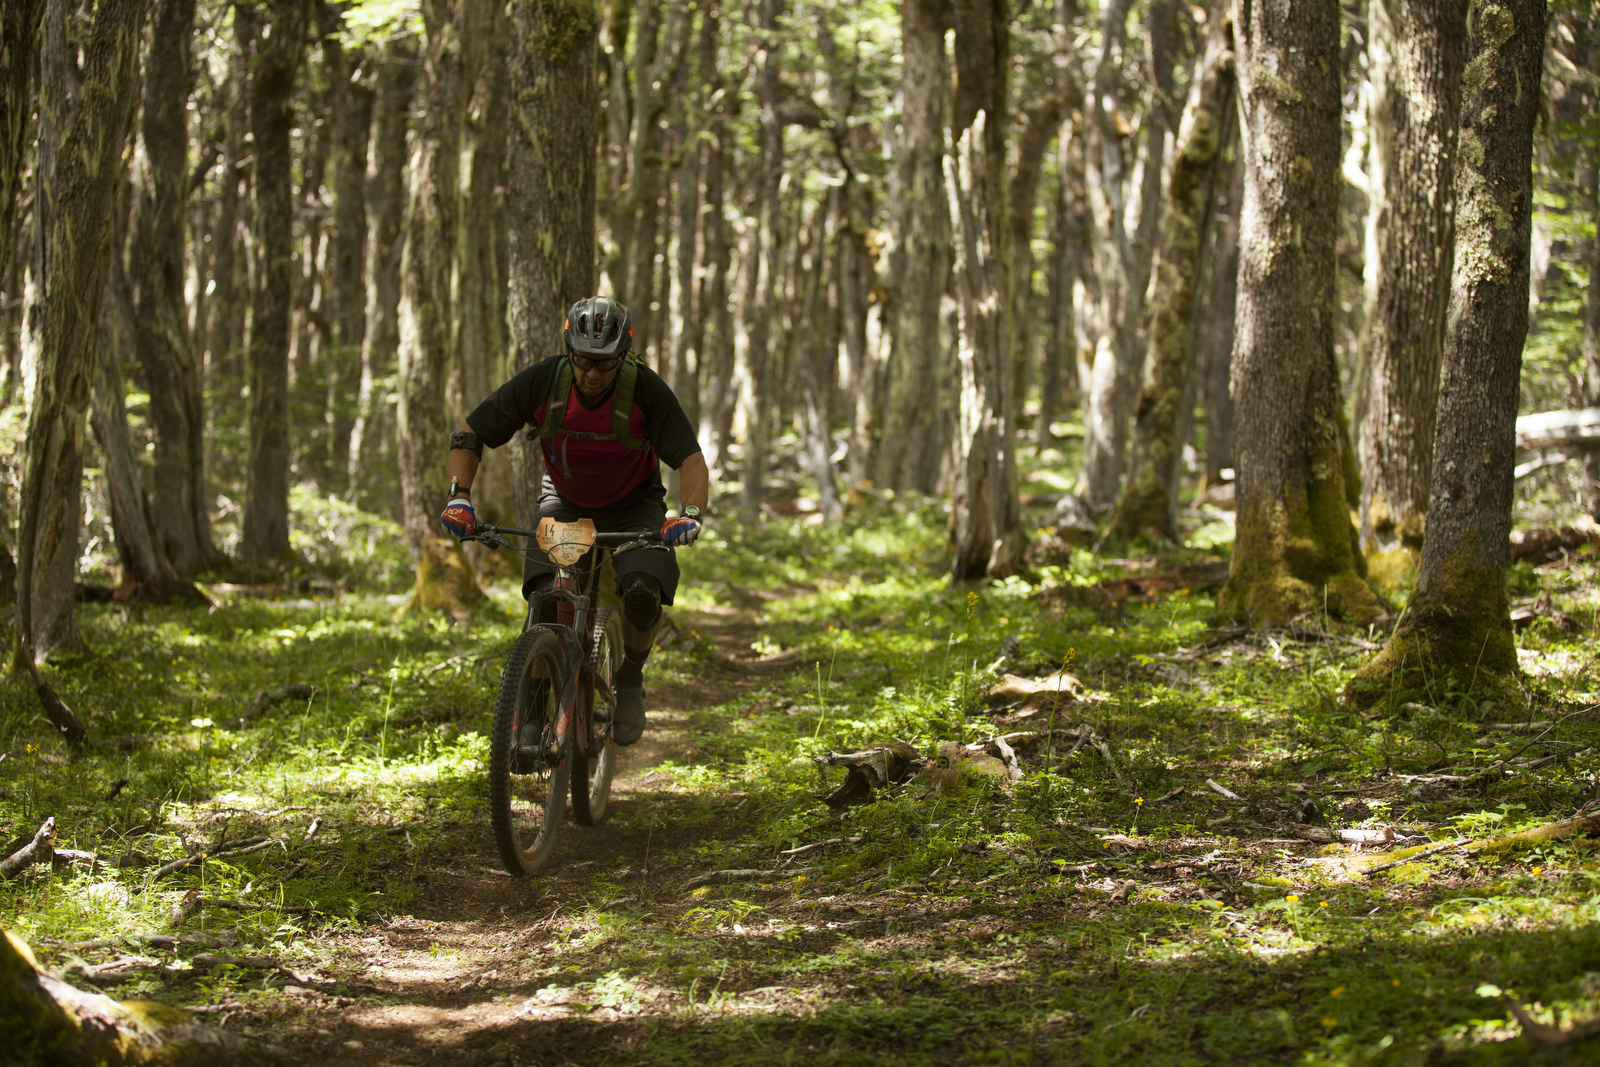 The forested singletrack we rode was amazing. Most of it had been cut in just days previously,ready for us to get the first rubber down.